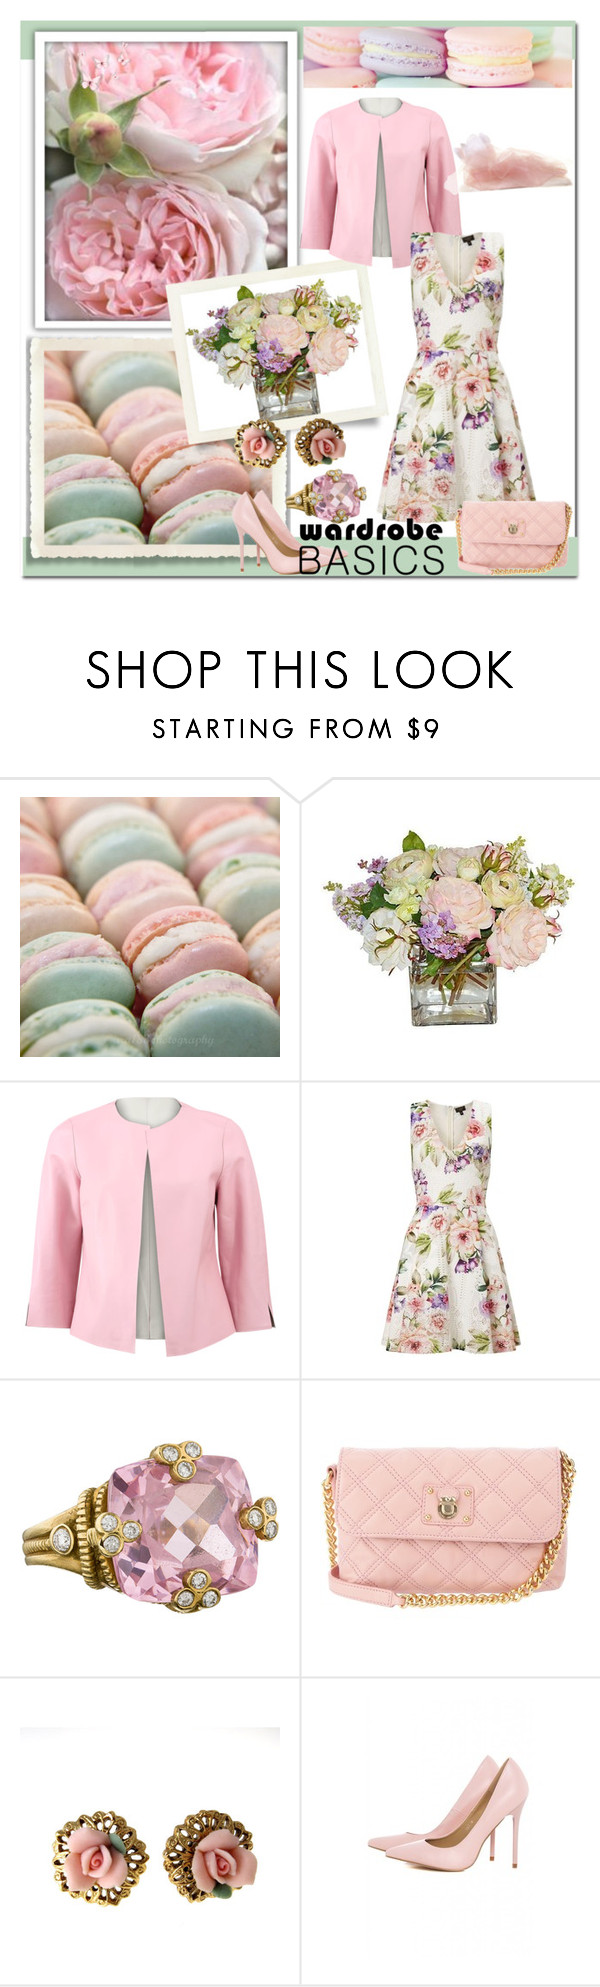 """""""Spring Jacket: Pastels"""" by dezaval ❤ liked on Polyvore featuring Pink Mint, ESCADA, Lipsy, Judith Ripka, Marc Jacobs, 1928, AX Paris, Noel Stewart and wardrobebasics"""